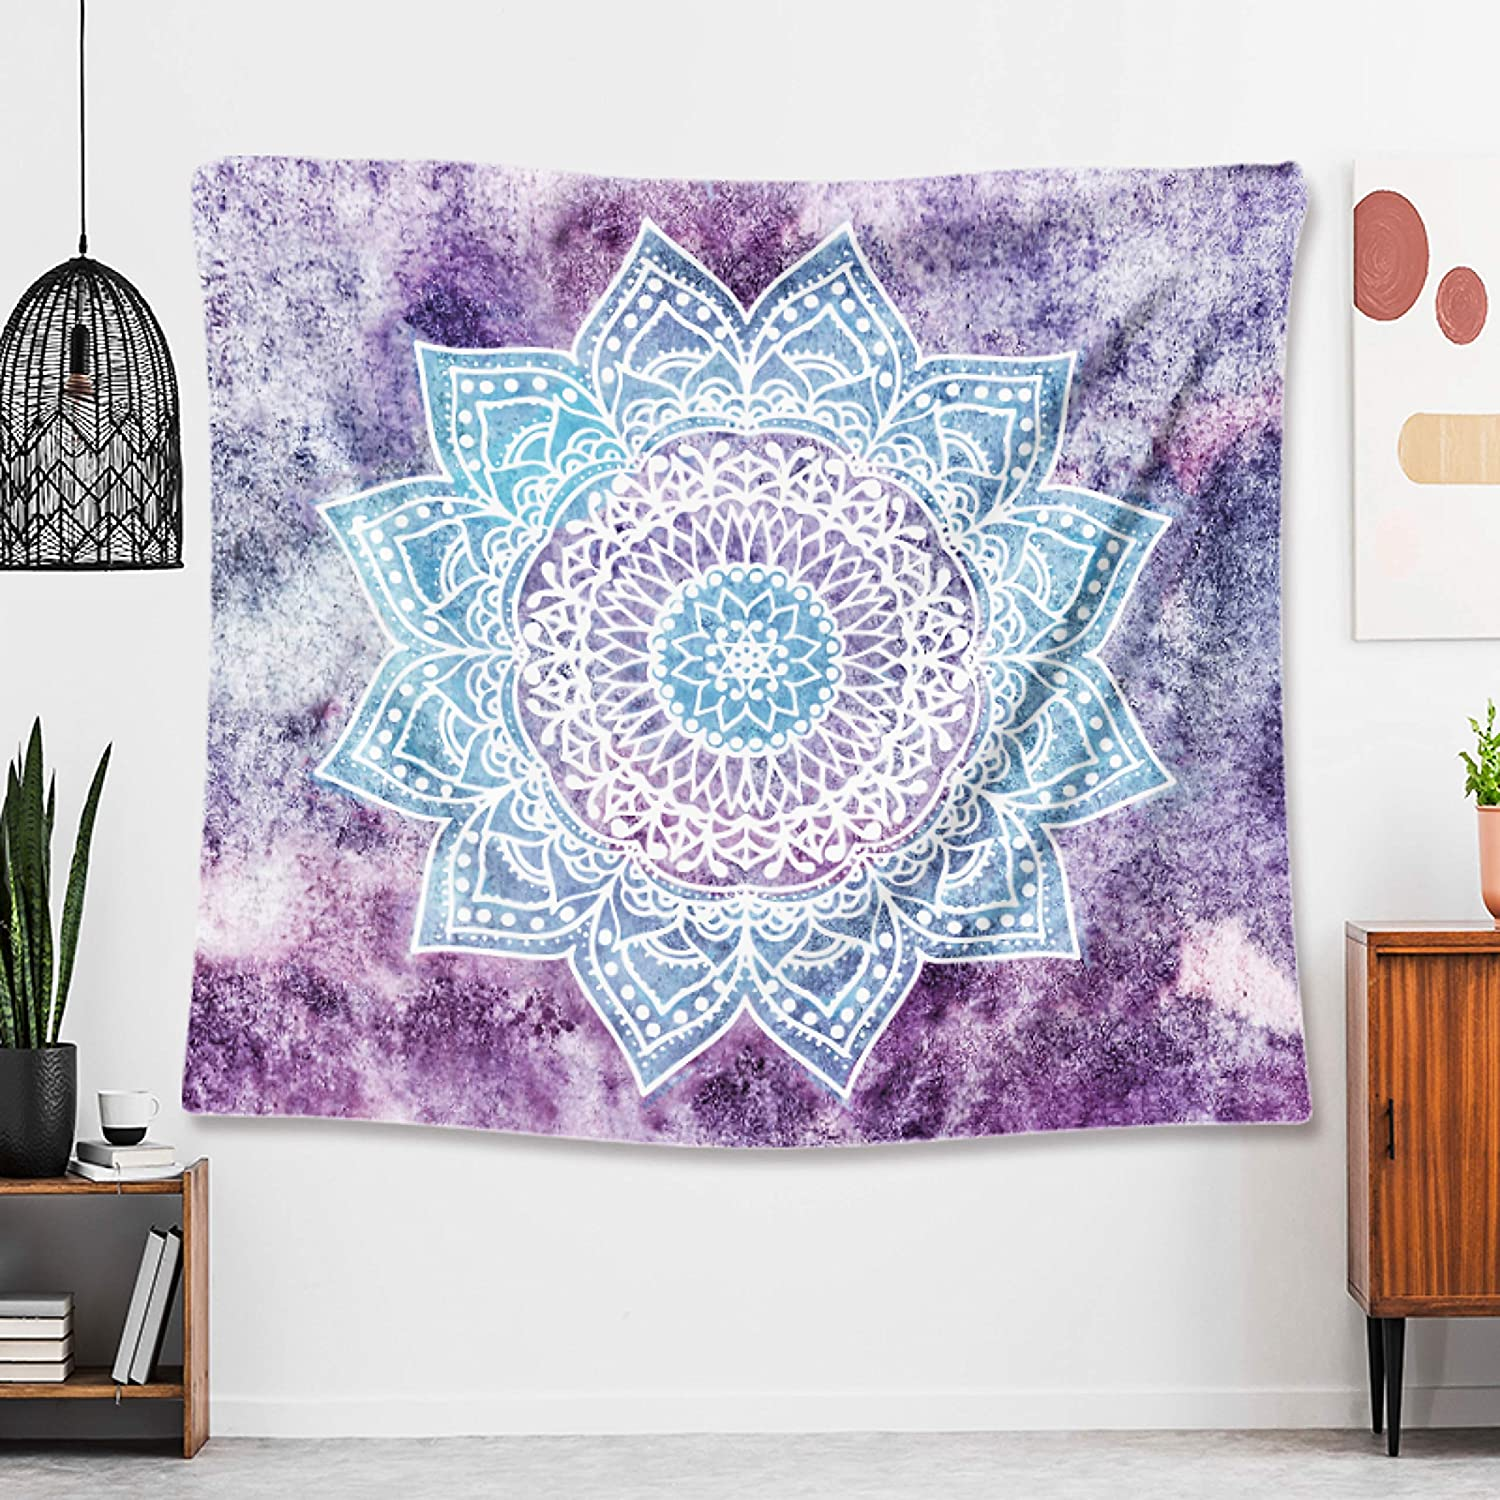 "Bohemian Floral Hippie Indian Chakra Mandala Tapestry Wall Hanging Tapestries for Bedroom Living Room Dorm Decor - Trippy Psychedelic Aesthetic Wave Art Print Medallion Room Decor - Blue Pink 59""×59"""